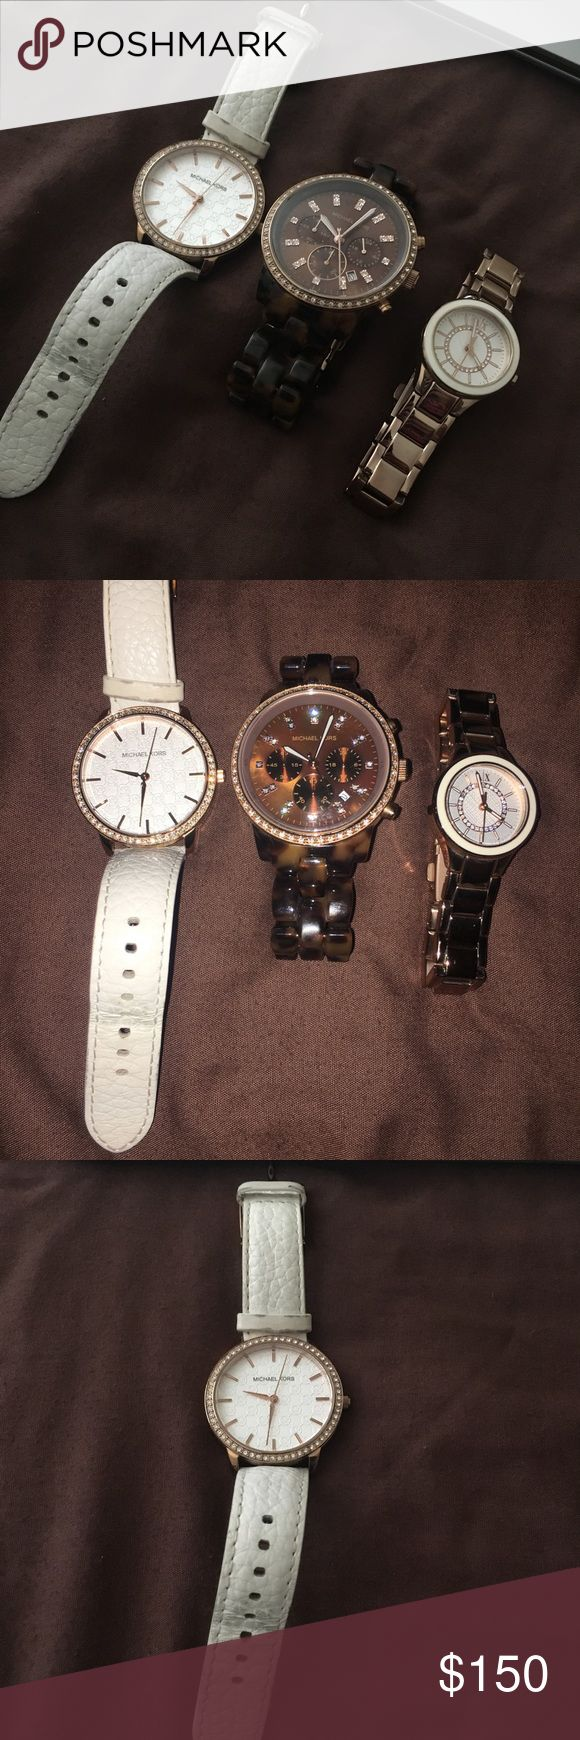 Michael Kors Watch Bundle 100% Authentic watches(Michael Kors and Armani Exchange). The white watch with leather strap shows the most sign of wear. All batteries need to be replaced. I still get endless compliments on all of these watches. Willing to accept the best offer! Please let me know if you'd like to see additional pictures of any item. Michael Kors Accessories Watches